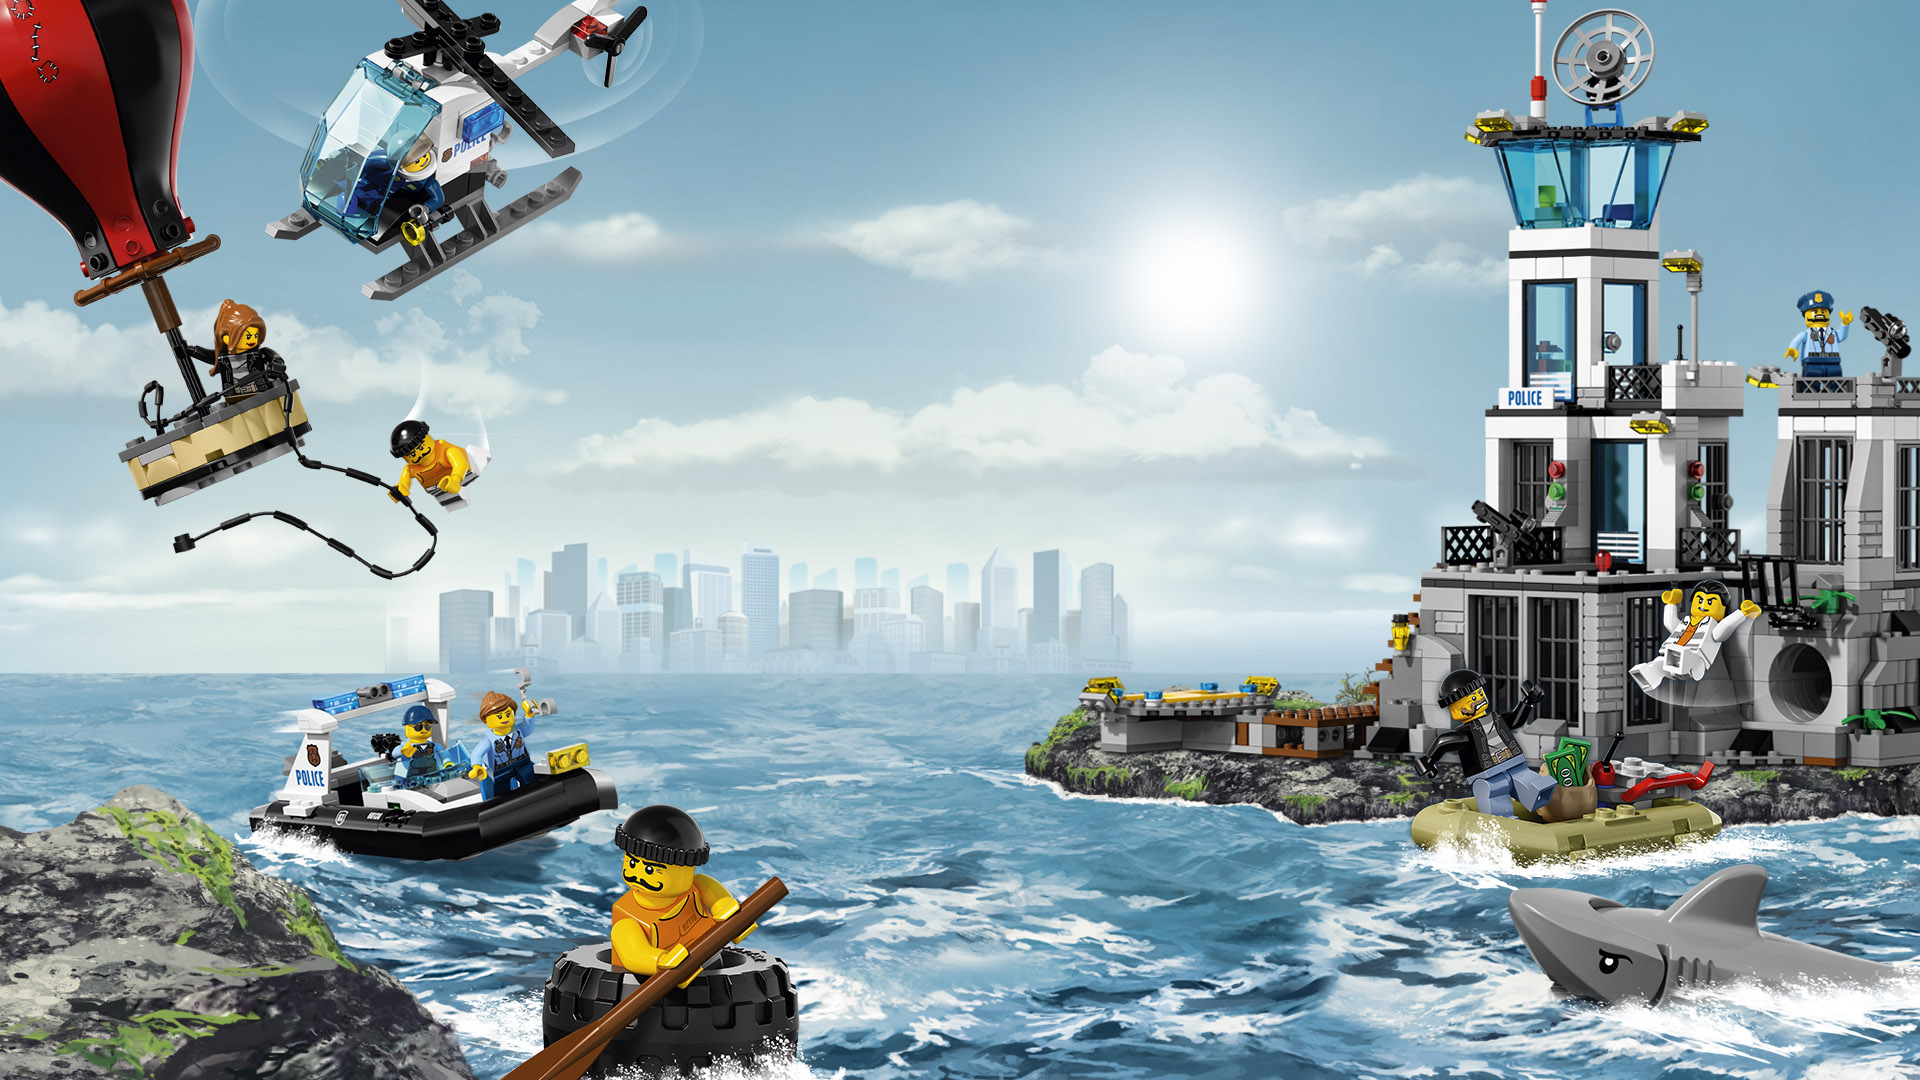 Lego Prison Break - Police chase escaping criminals by sea